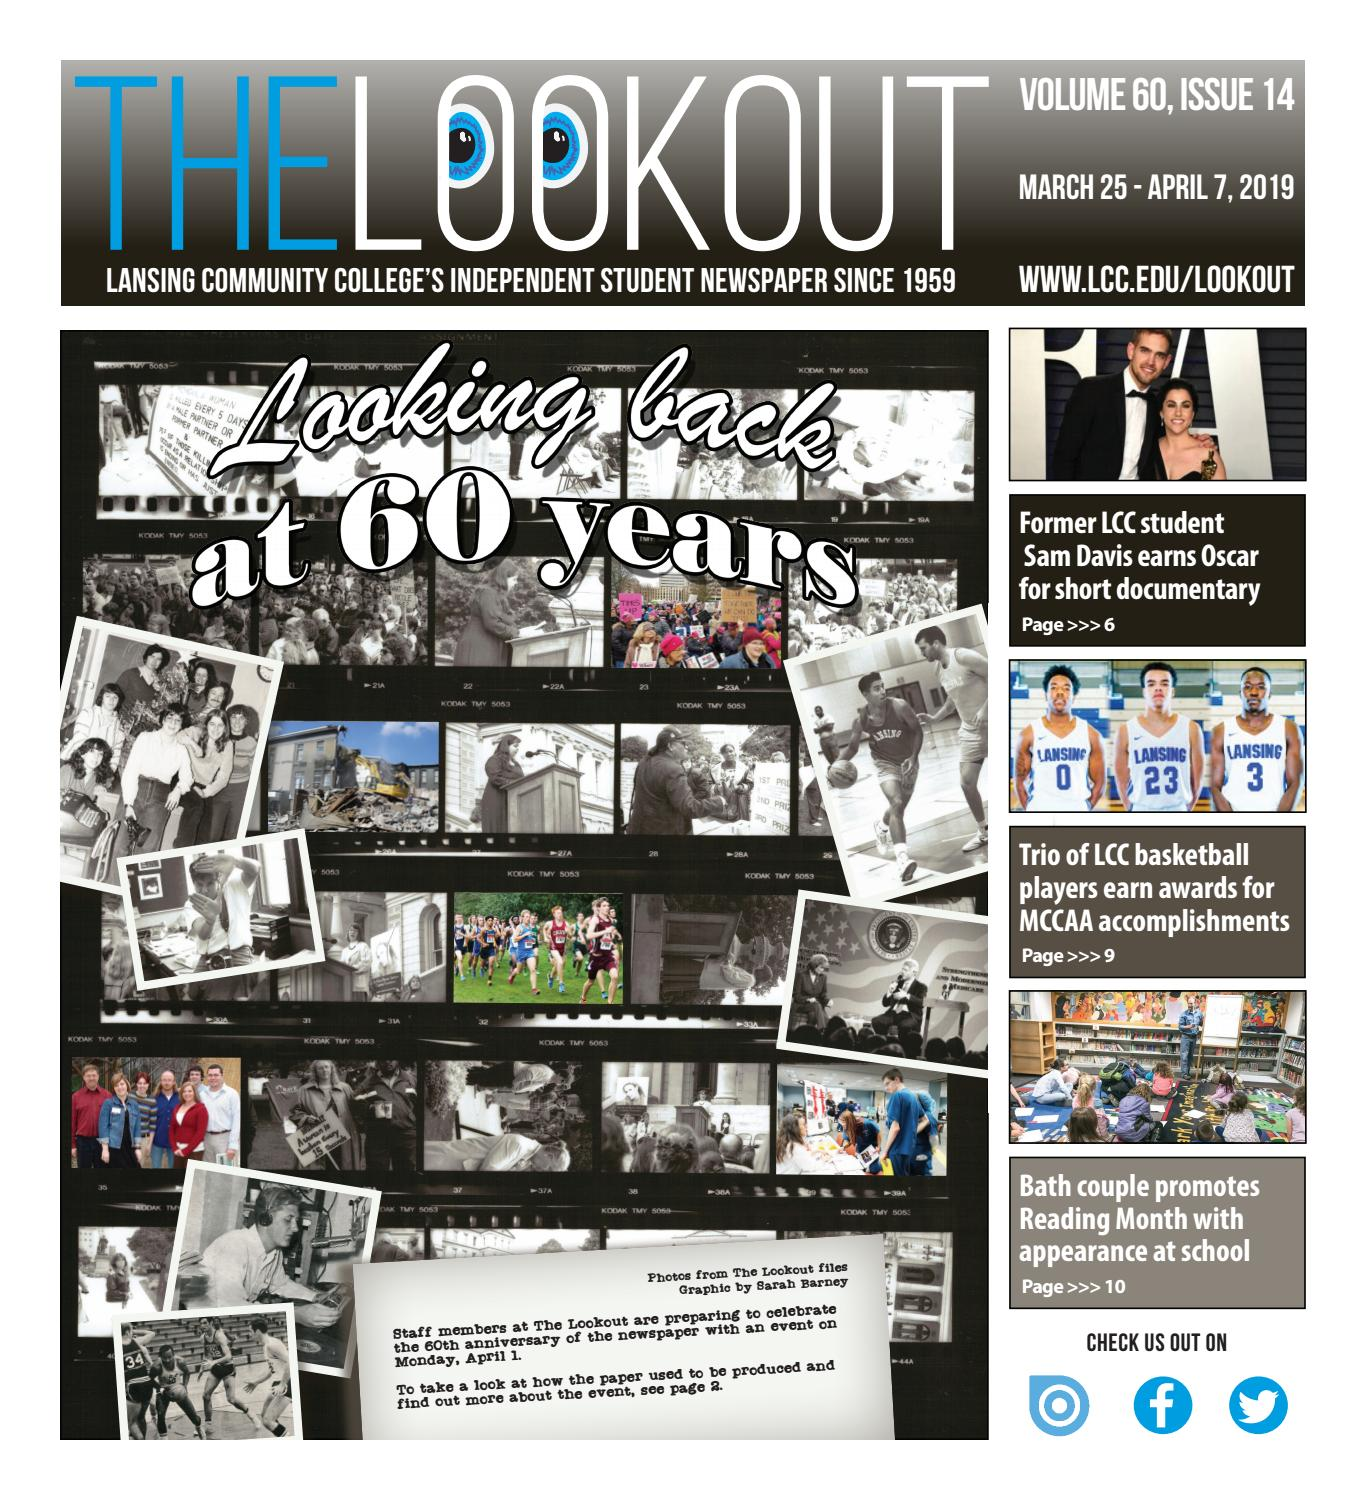 Lcc Fall Semester 2020.The Lookout Volume 60 Issue 14 By The Lookout Issuu